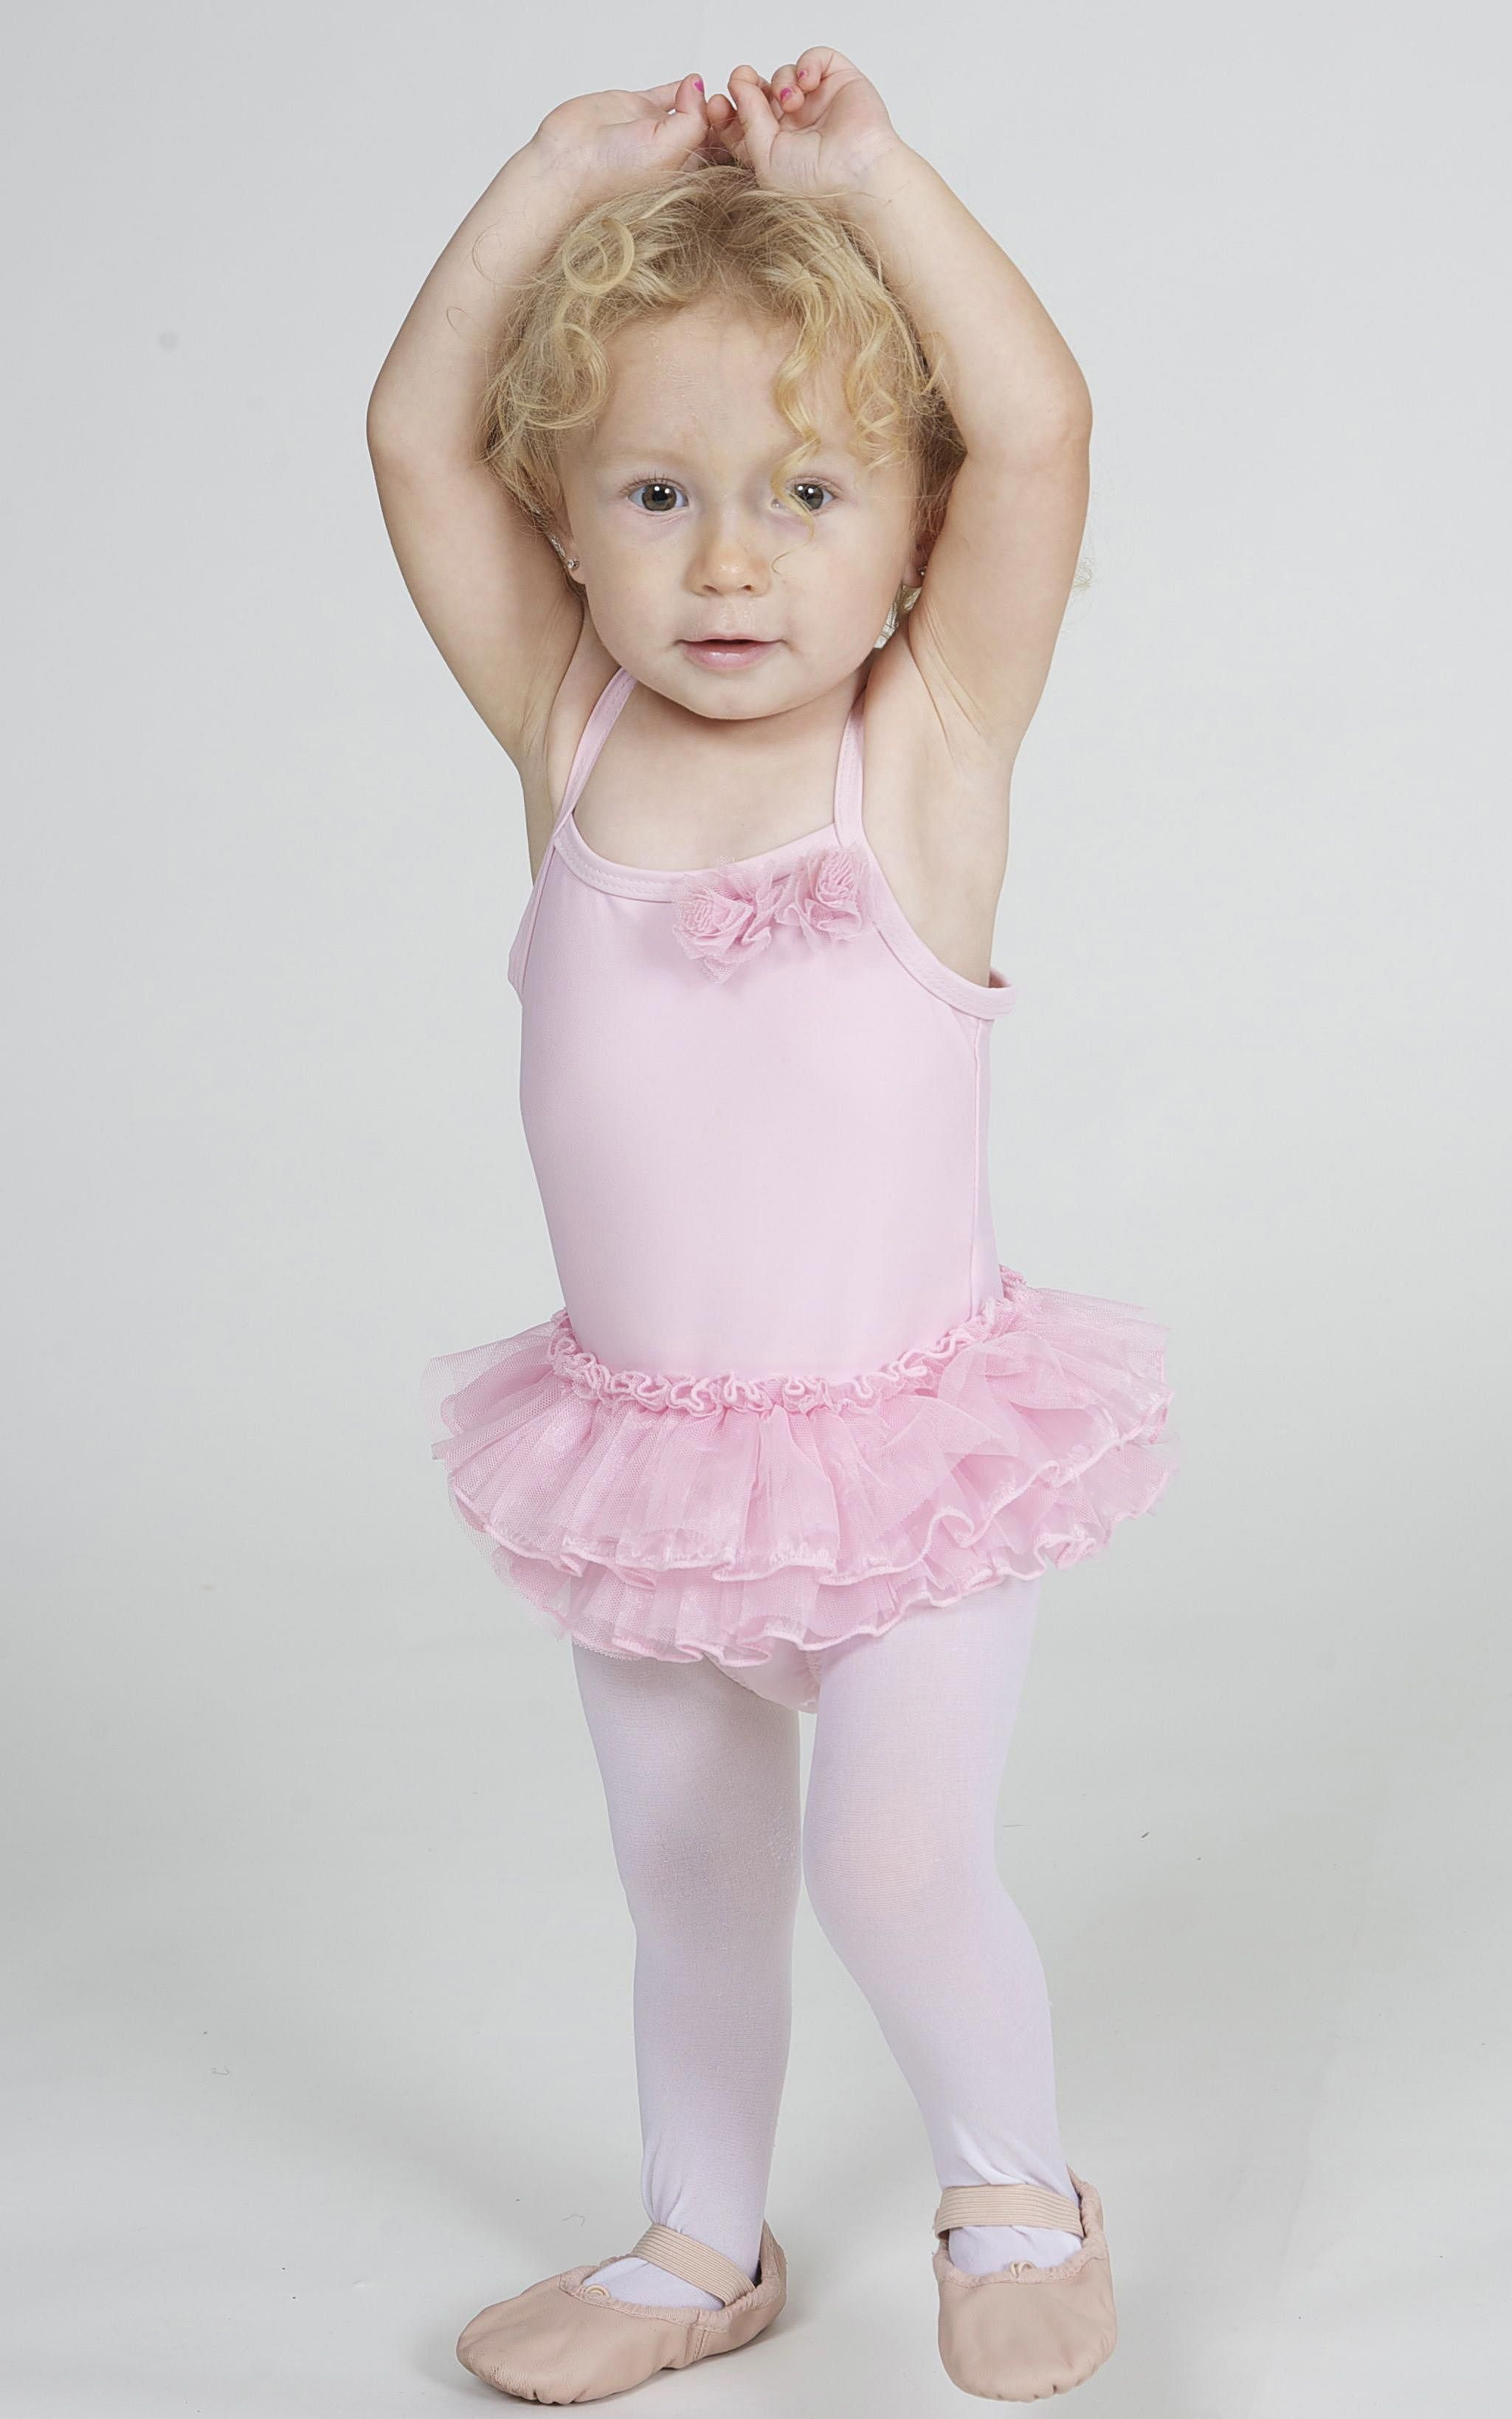 a8f17ac1b Tips for Teaching Creative Movement and Ballet Dance to Toddlers in ...